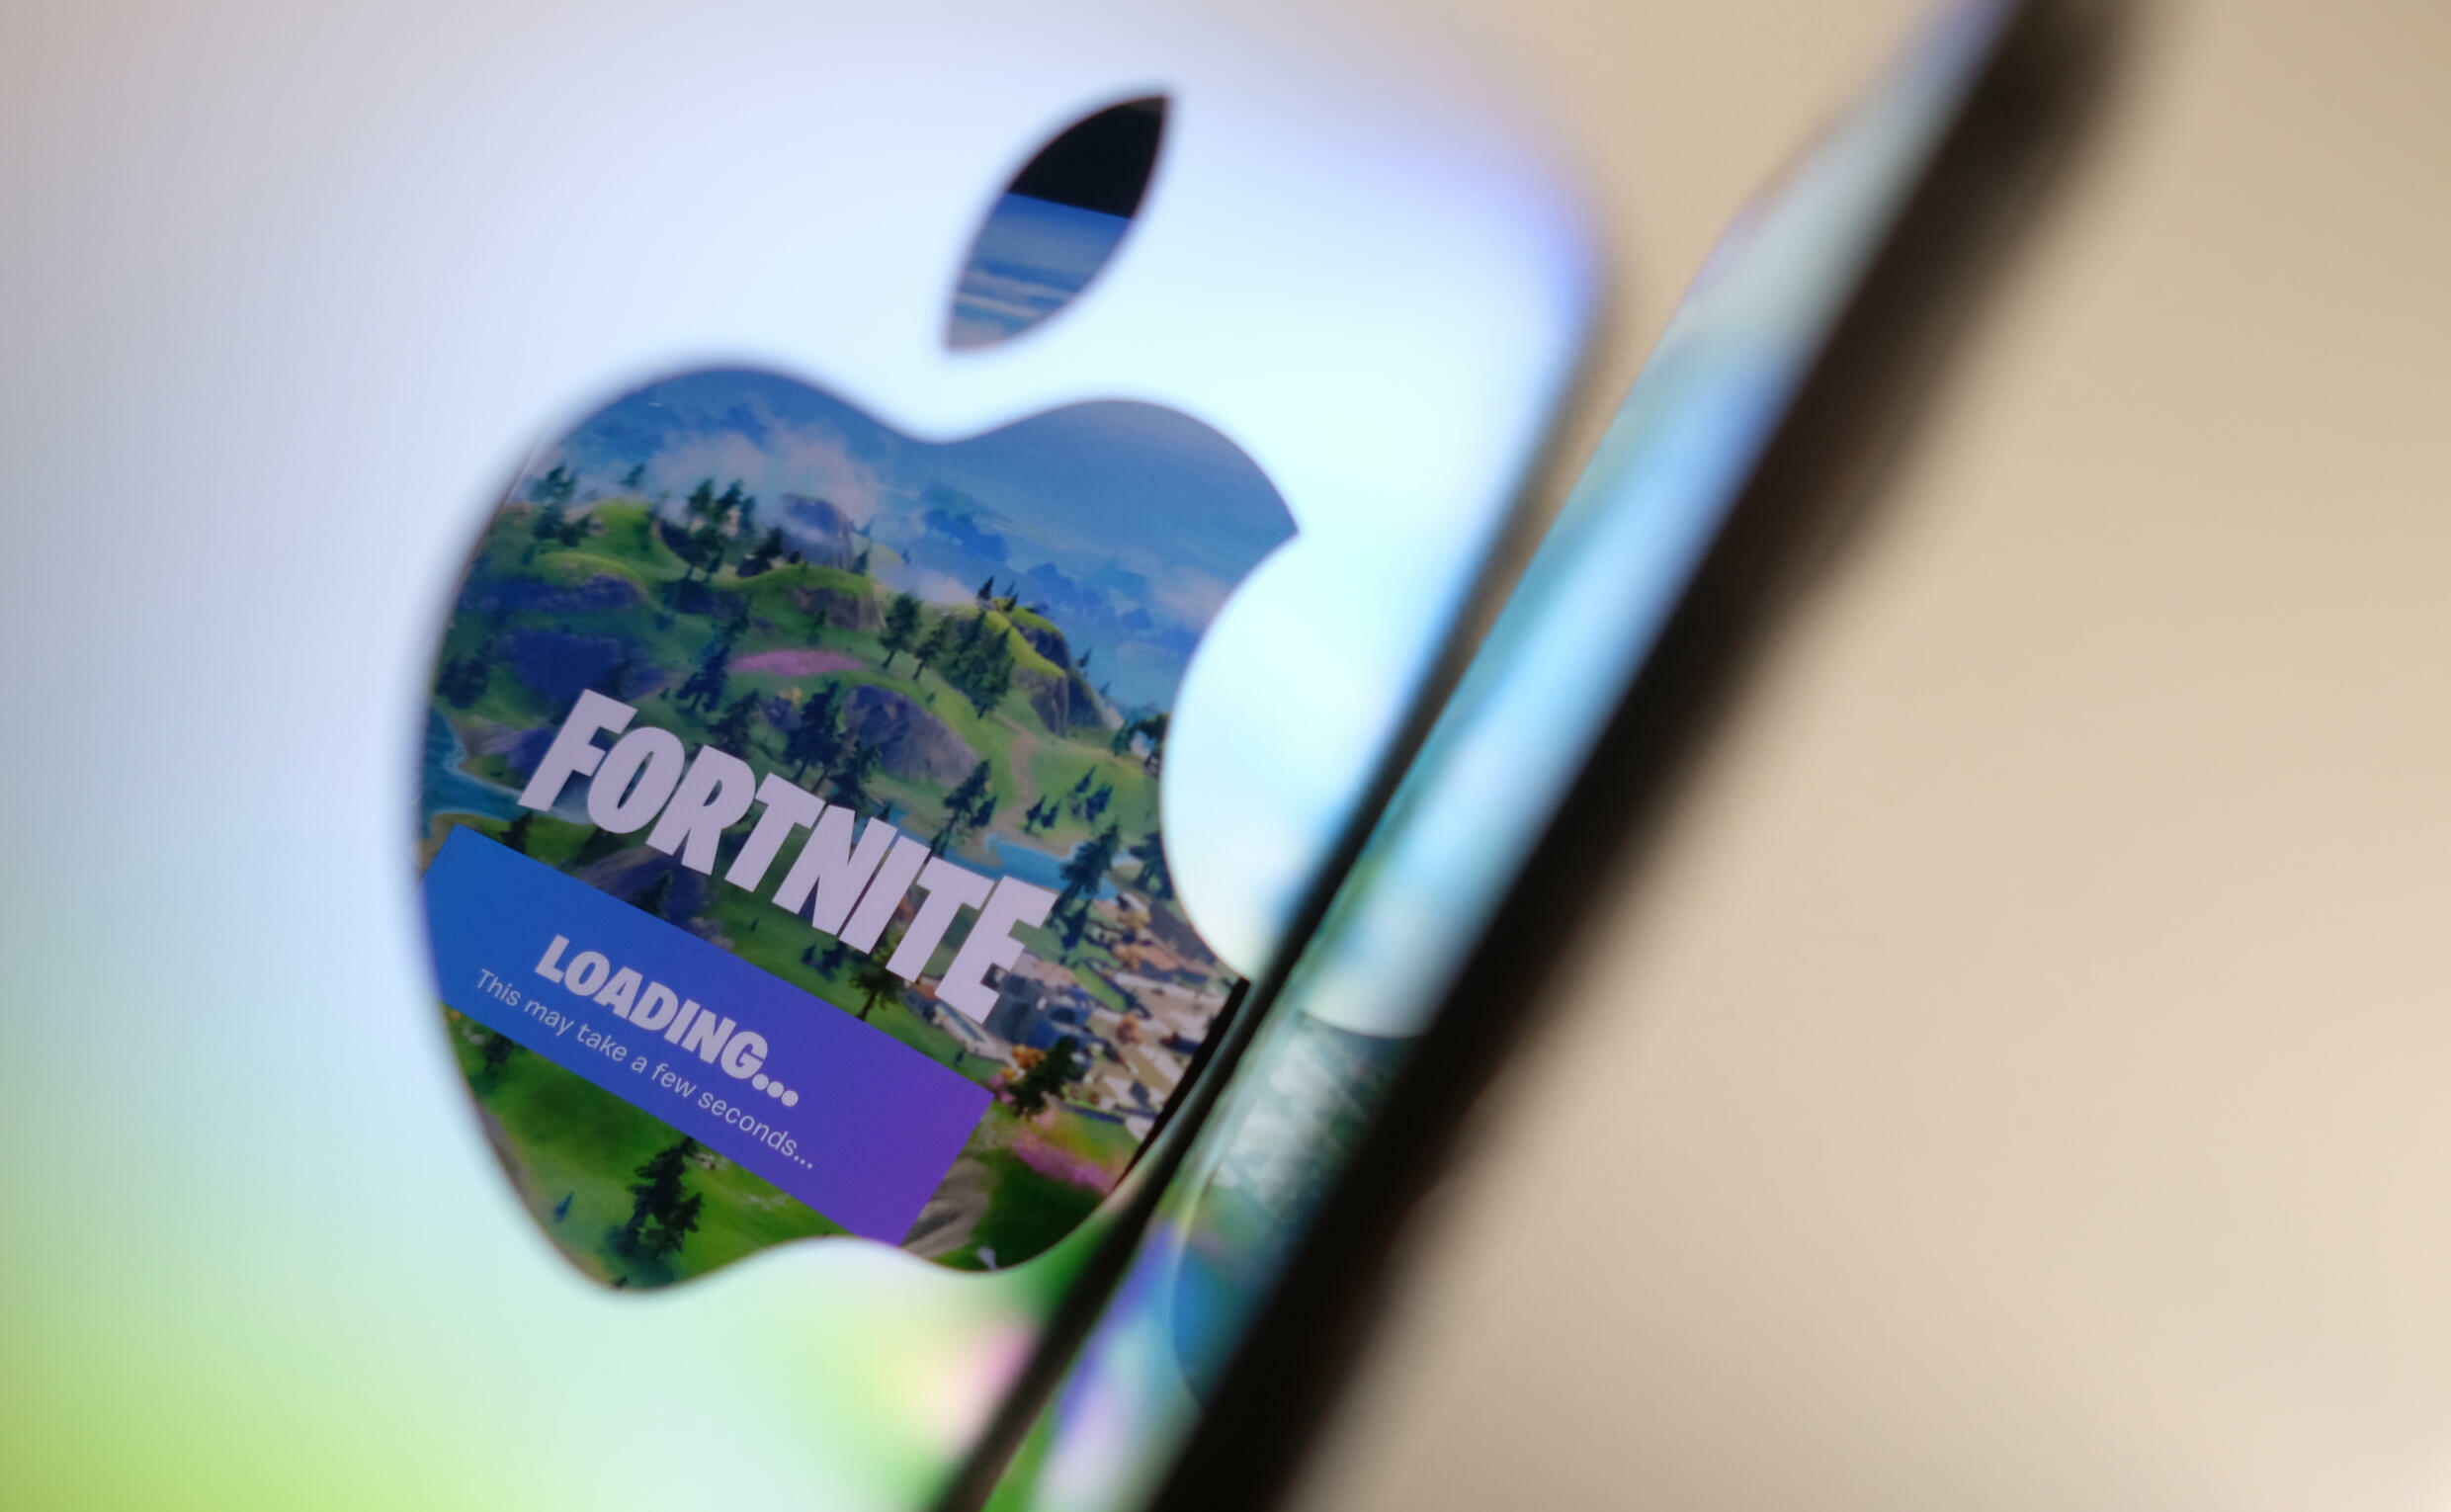 Apple and Fortnite maker Epic are at the forefront of a worldwide battle on how revenues should be divided between platforms and content creators